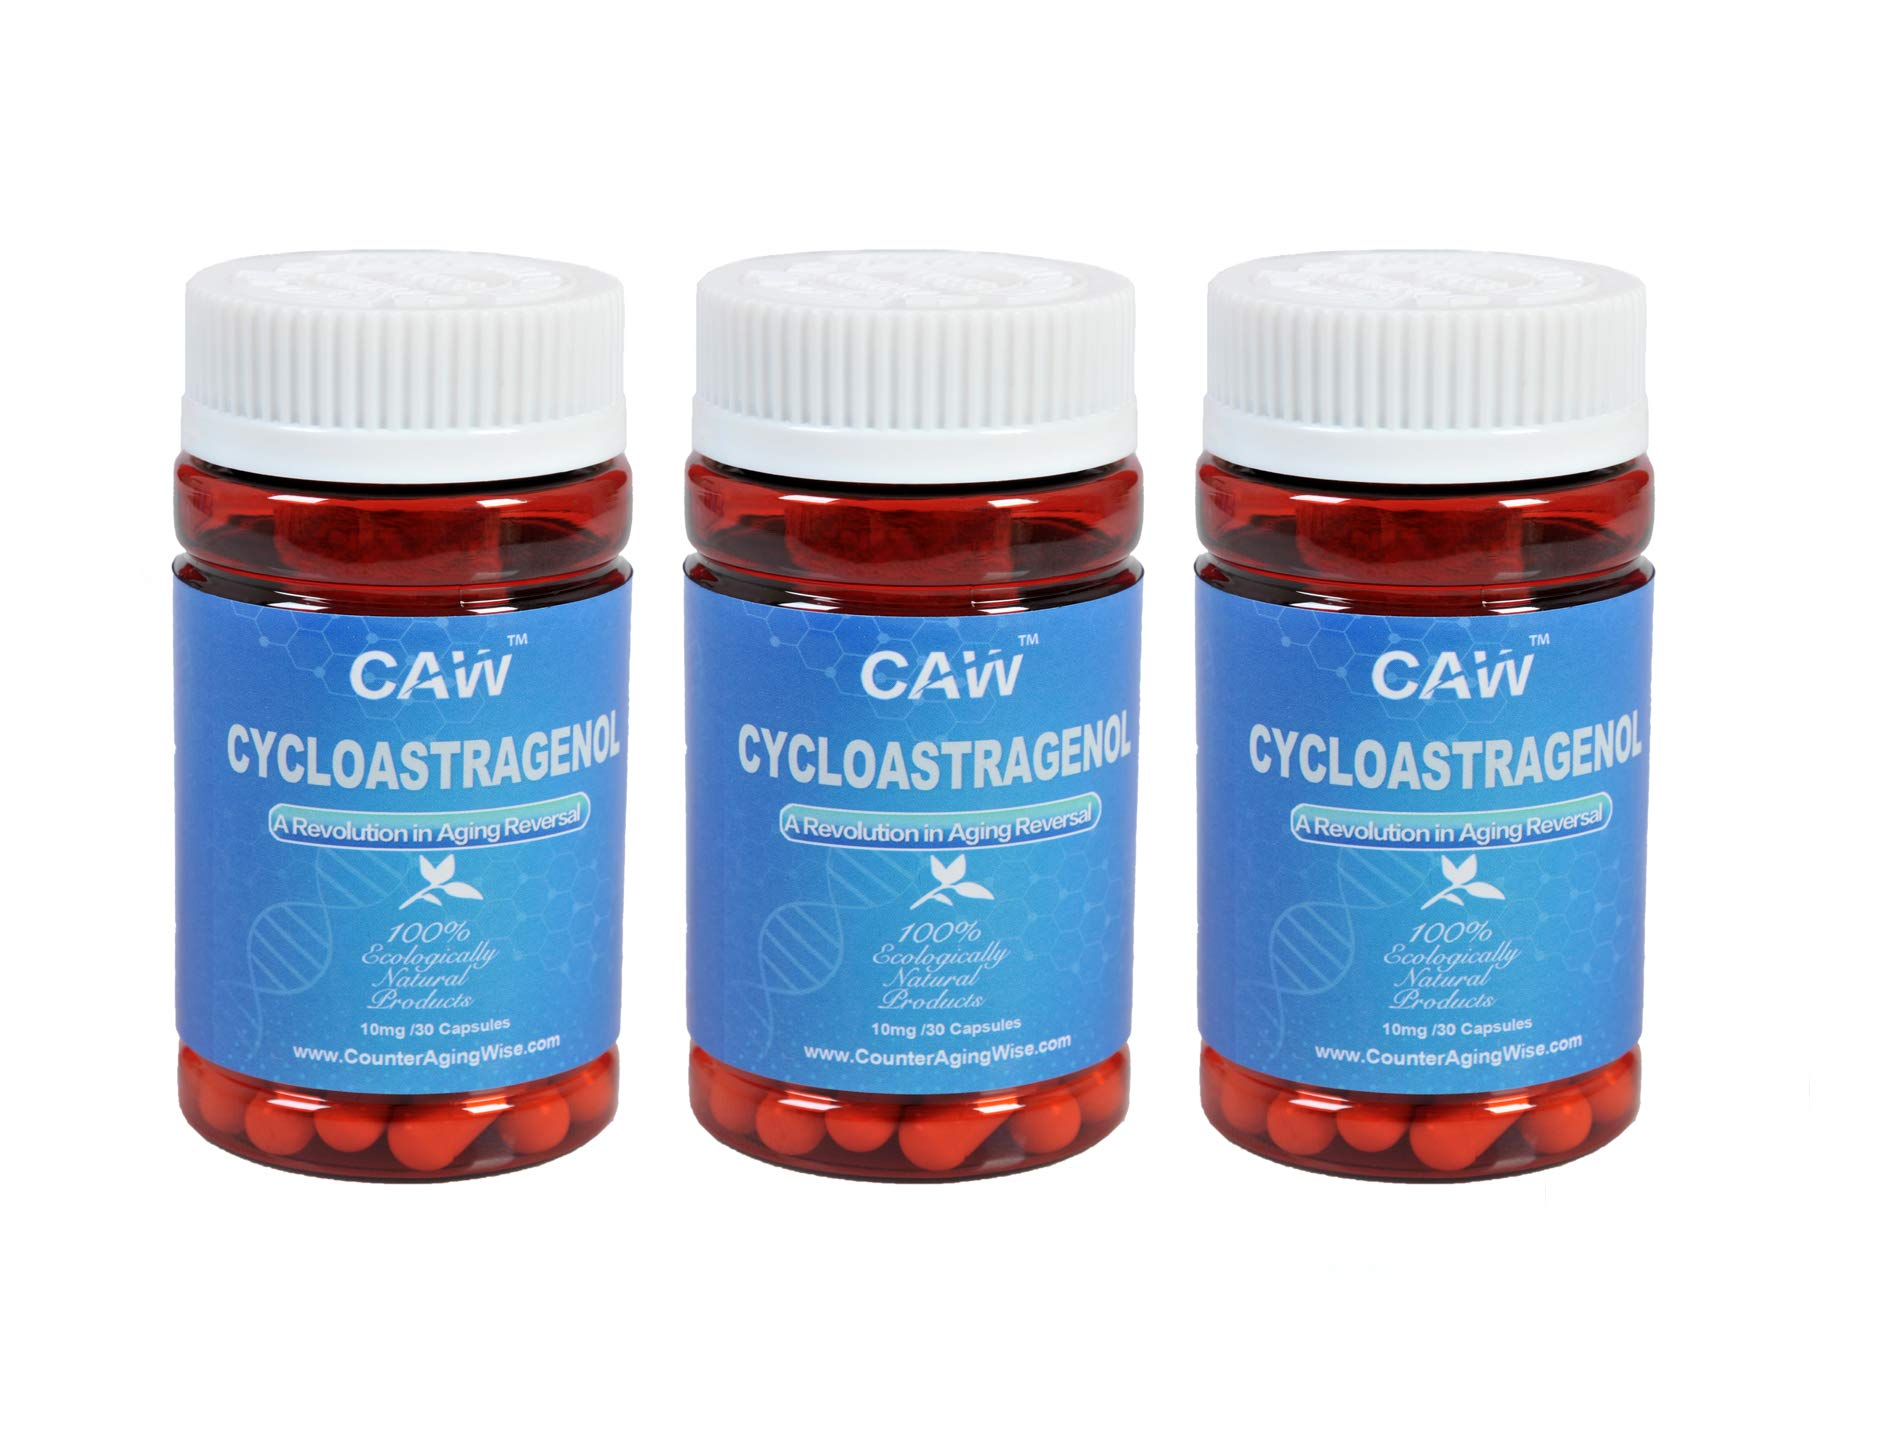 CAW Hypersorption Cycloastragenol 98% 10mg 90enteric-coated Capsules | Telomerase Activation |